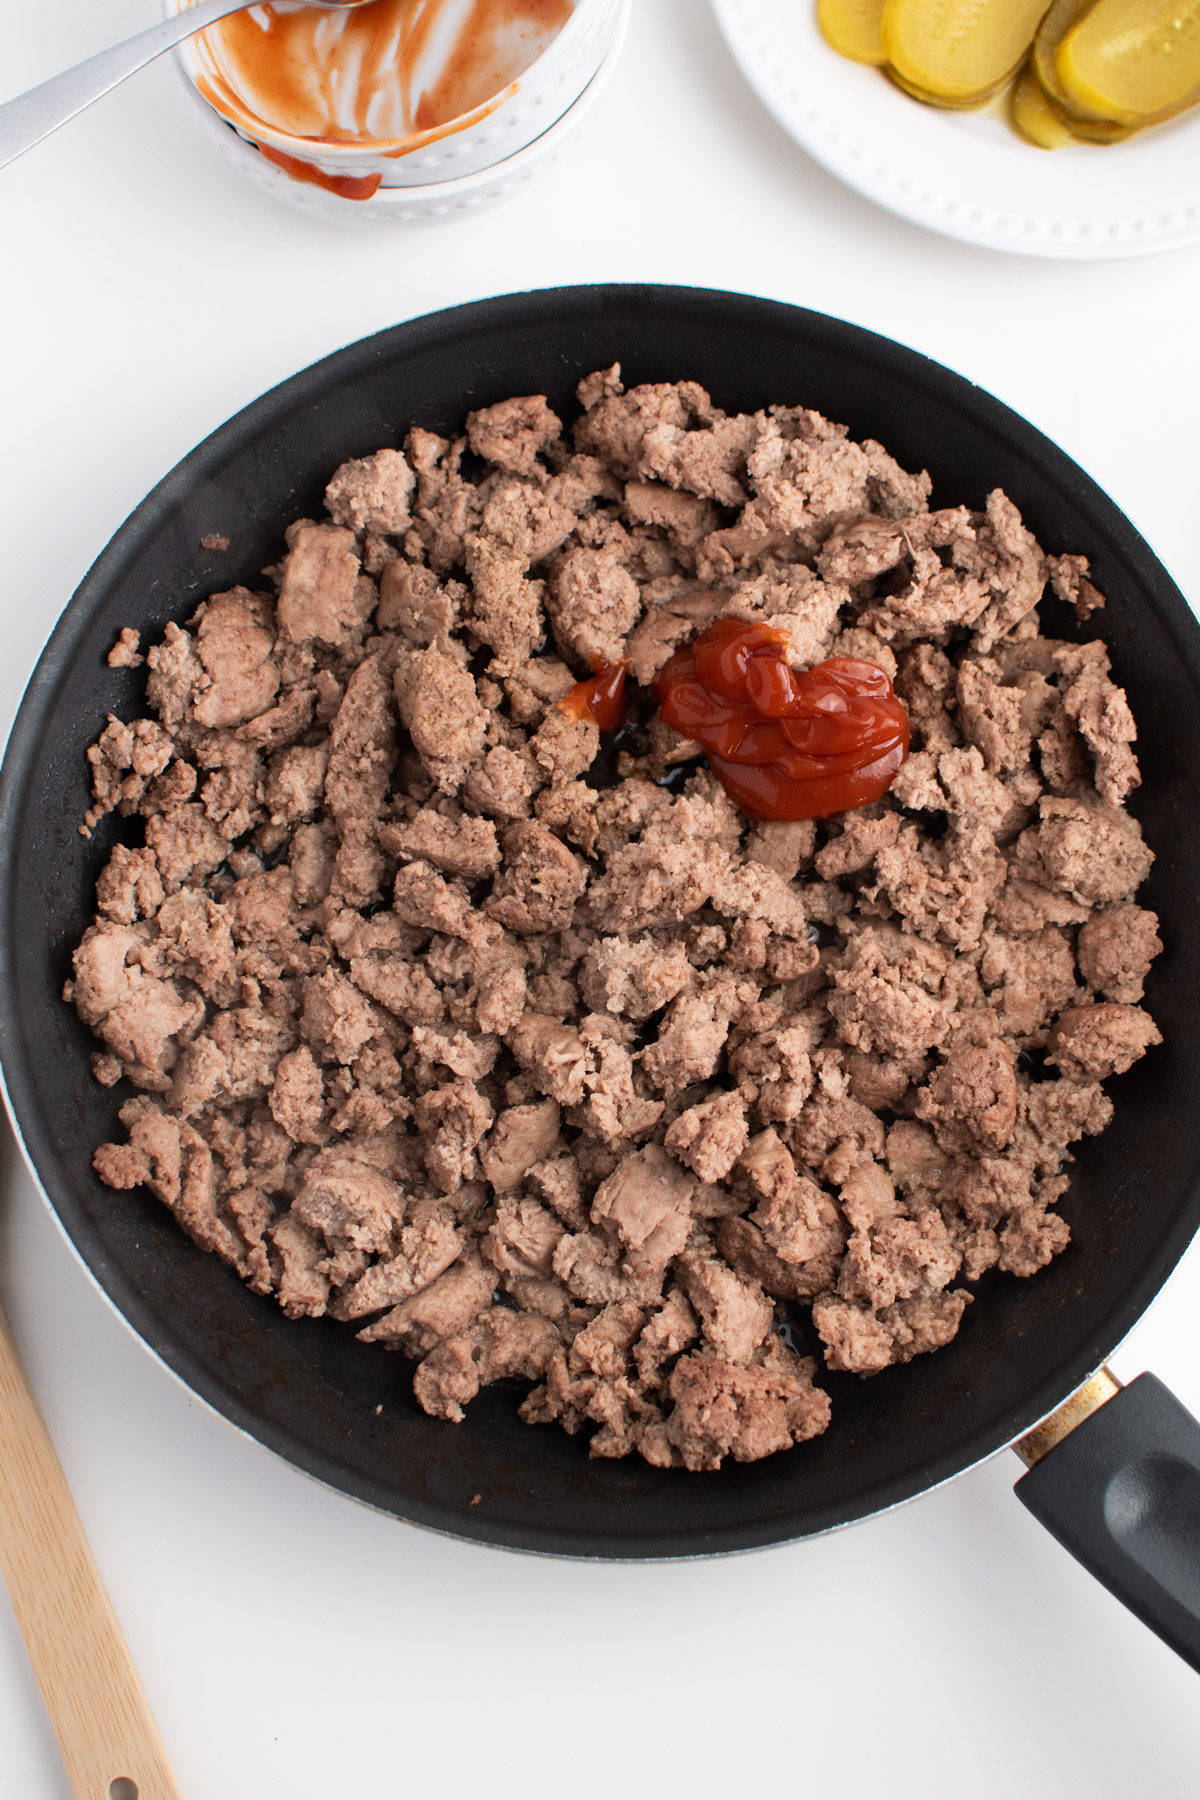 Ketchup and Worcestershire sauce on ground turkey cooked in a black skillet.